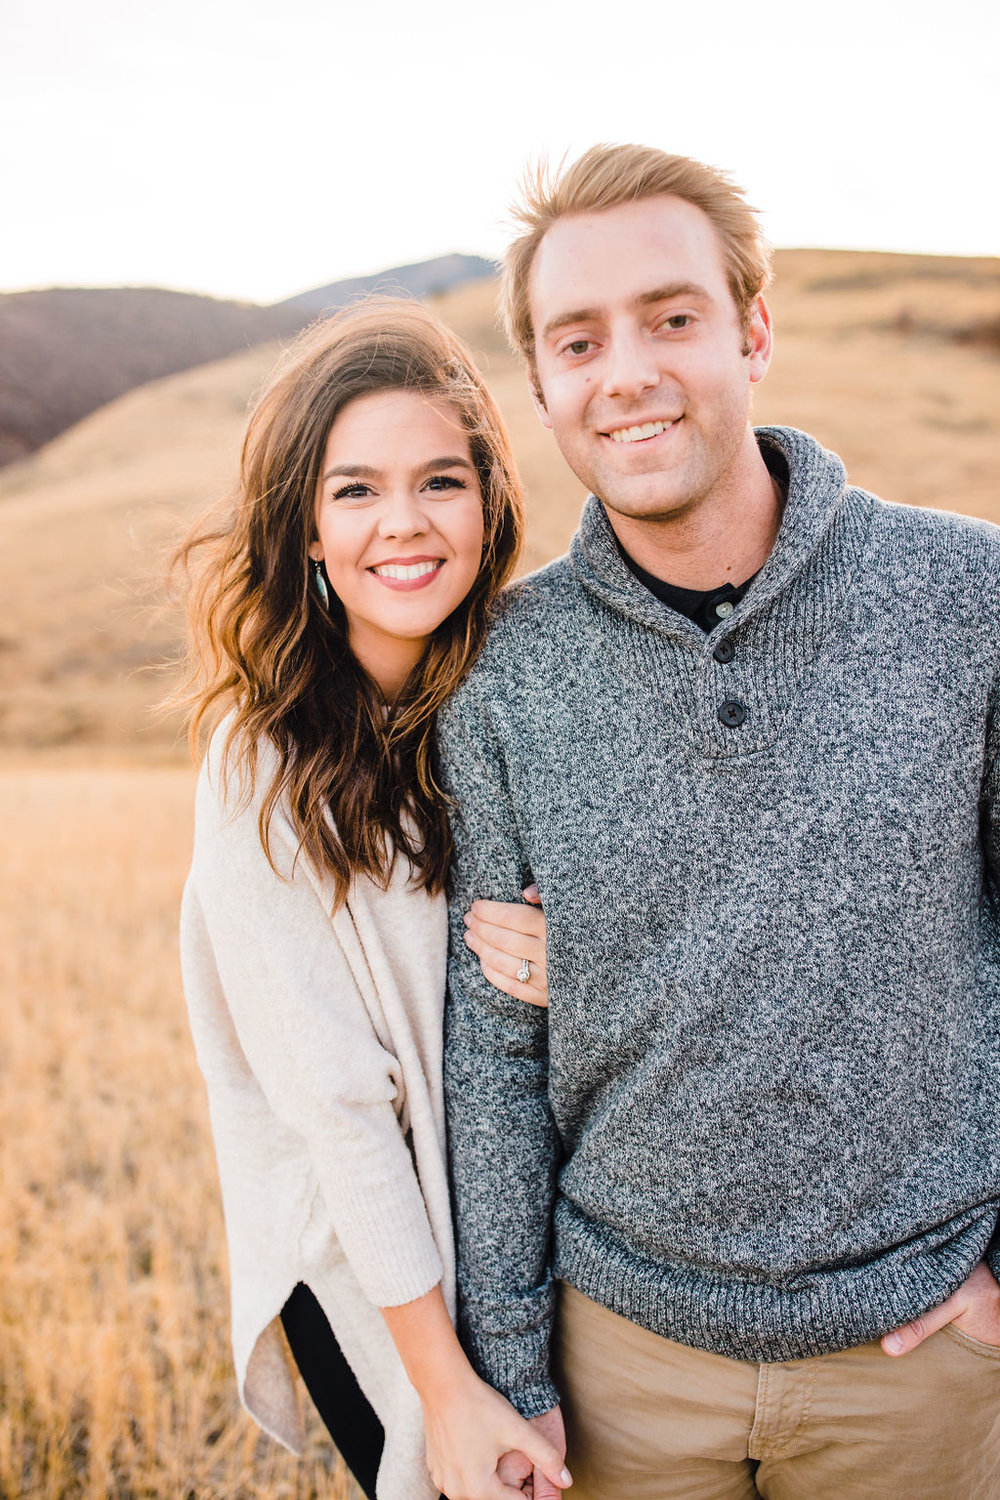 northern utah engagement photos cache valley utah calli richards engagement photographer windy engagements